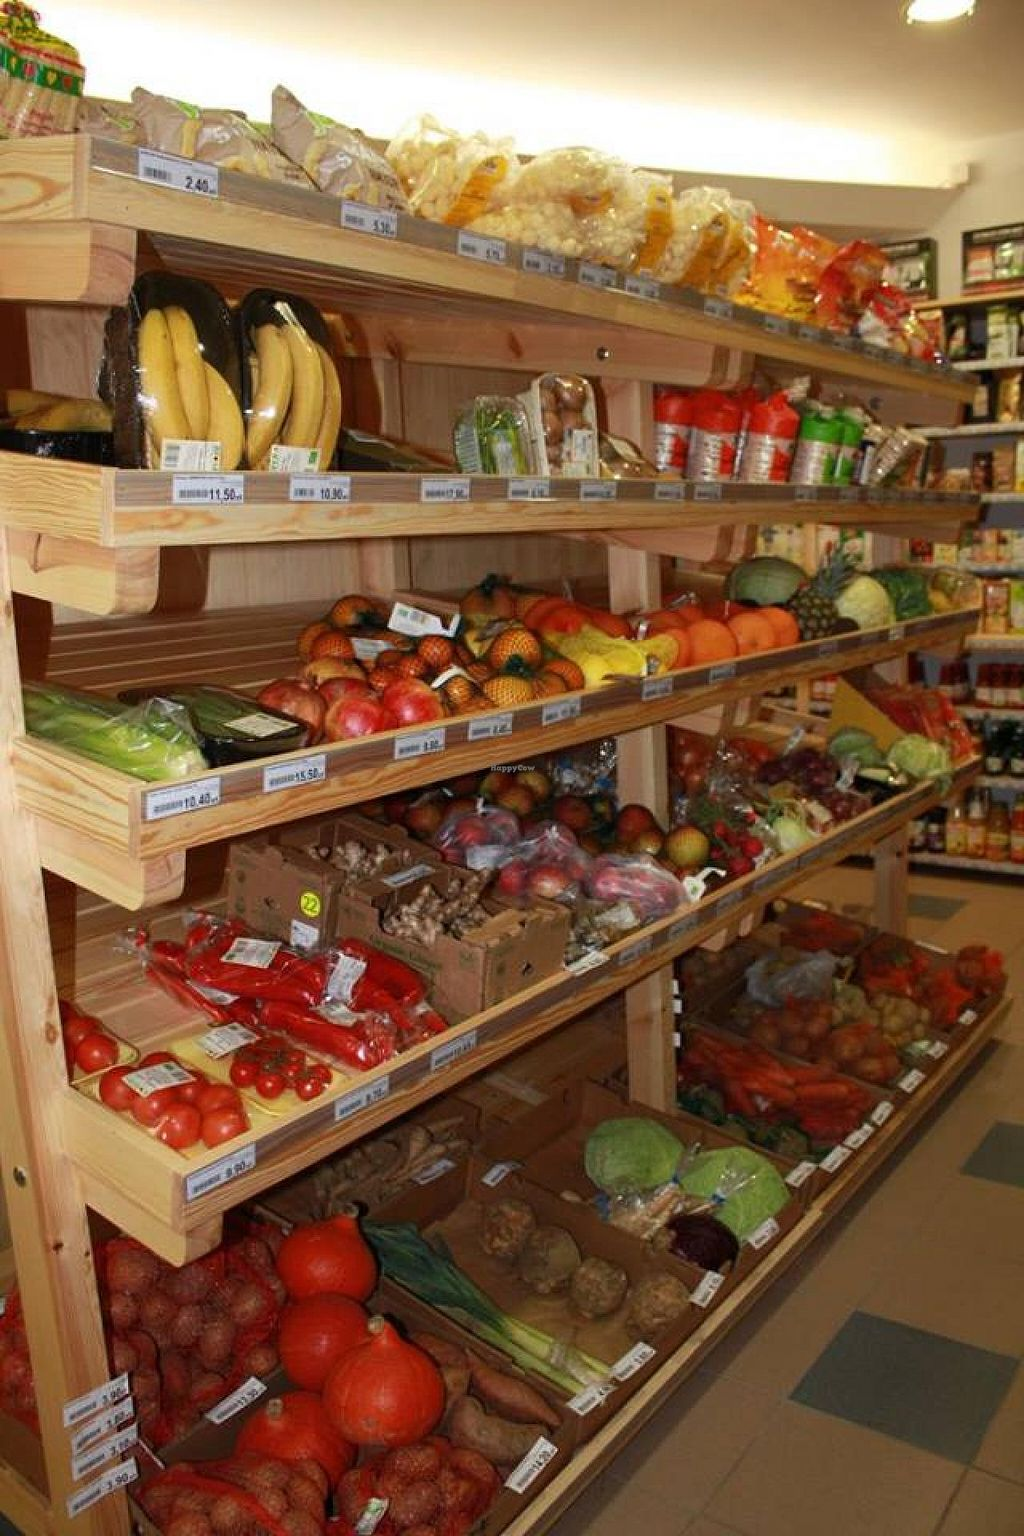 """Photo of ekoAleja Gdansk  by <a href=""""/members/profile/_nina_"""">_nina_</a> <br/>Organically grown fruits and vegetables <br/> January 25, 2015  - <a href='/contact/abuse/image/55112/91407'>Report</a>"""